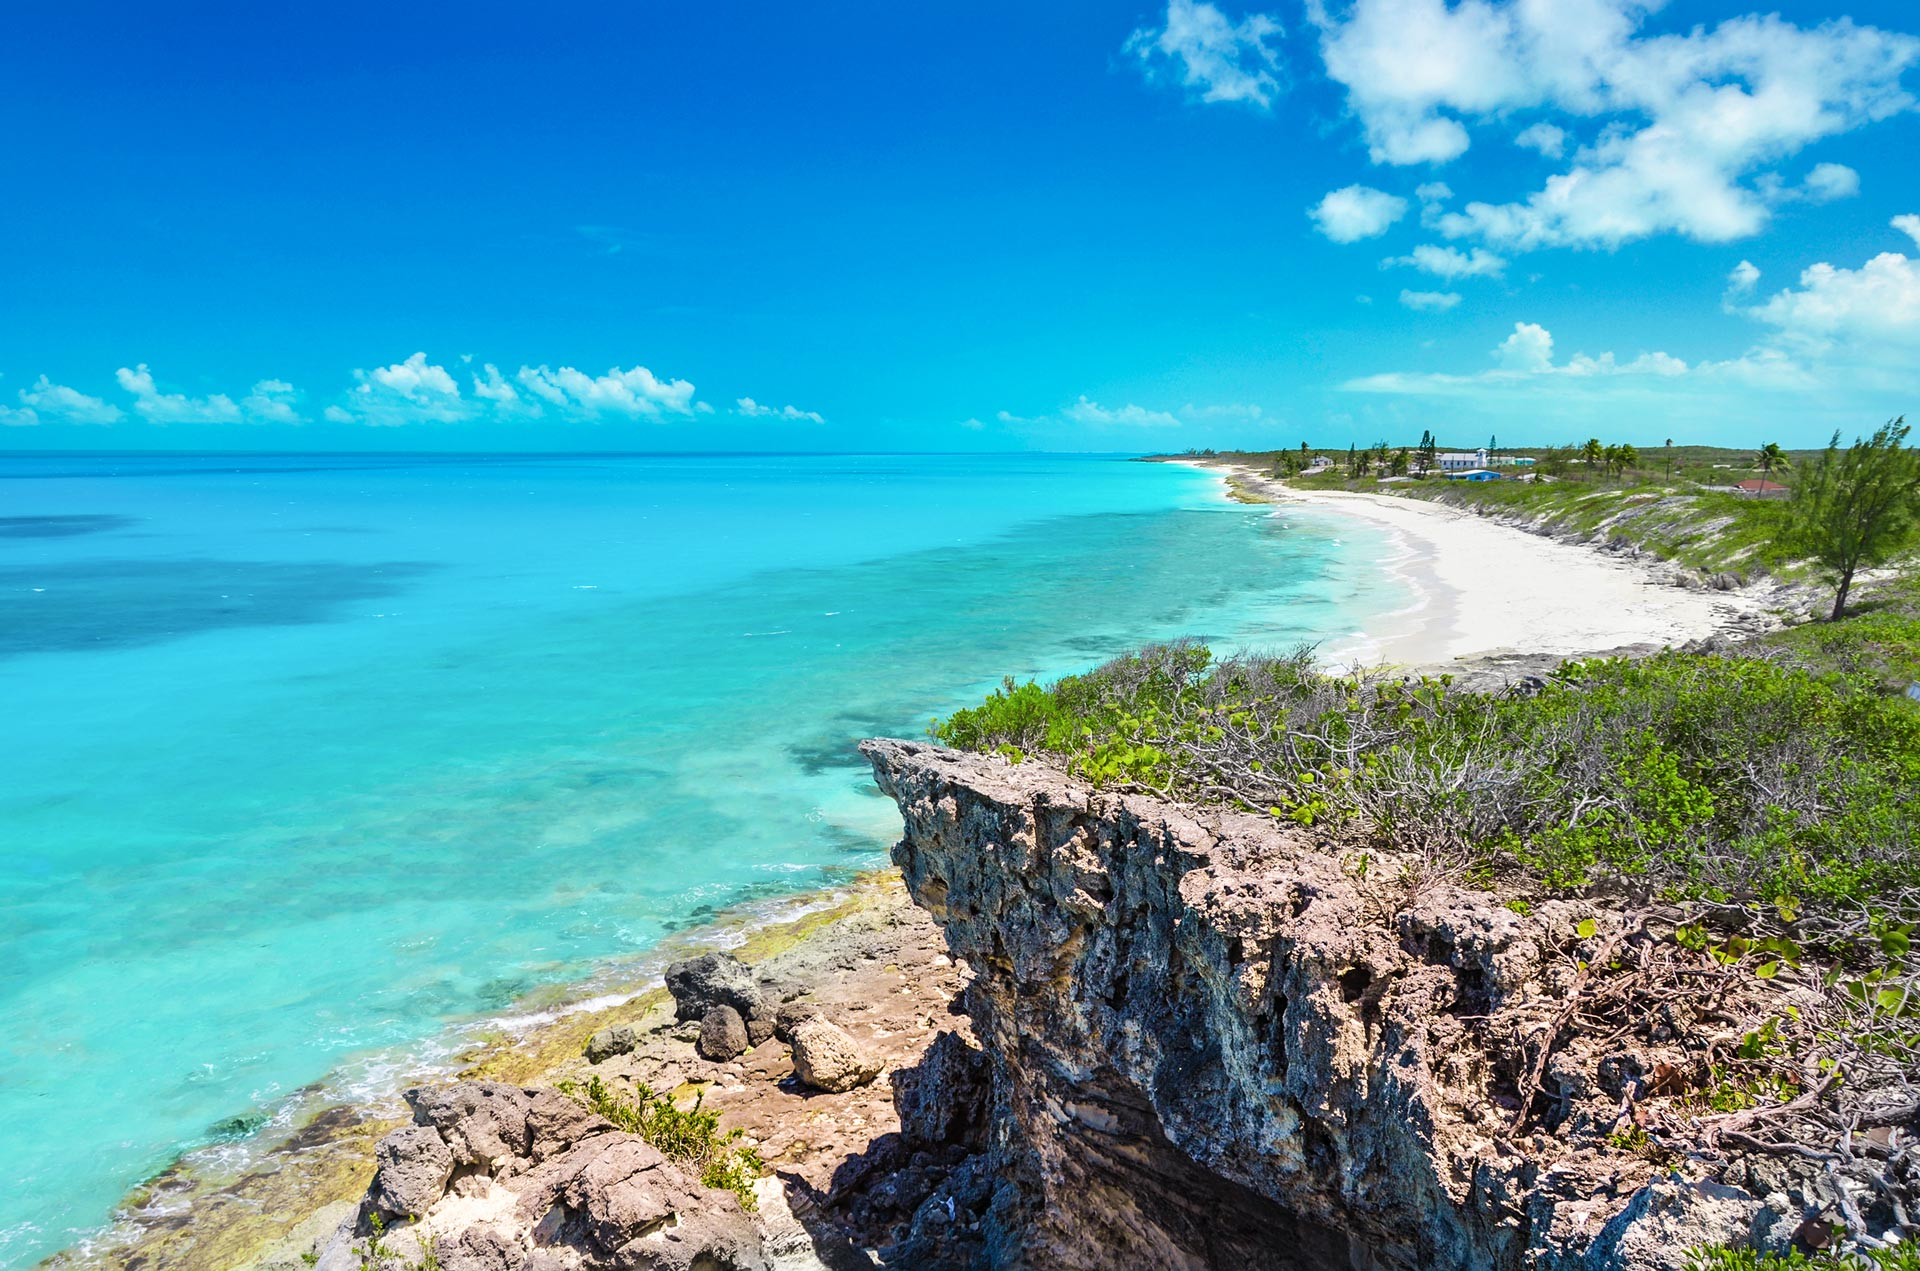 Perfect Scenery: Famous Film Set Locations In The Bahamas